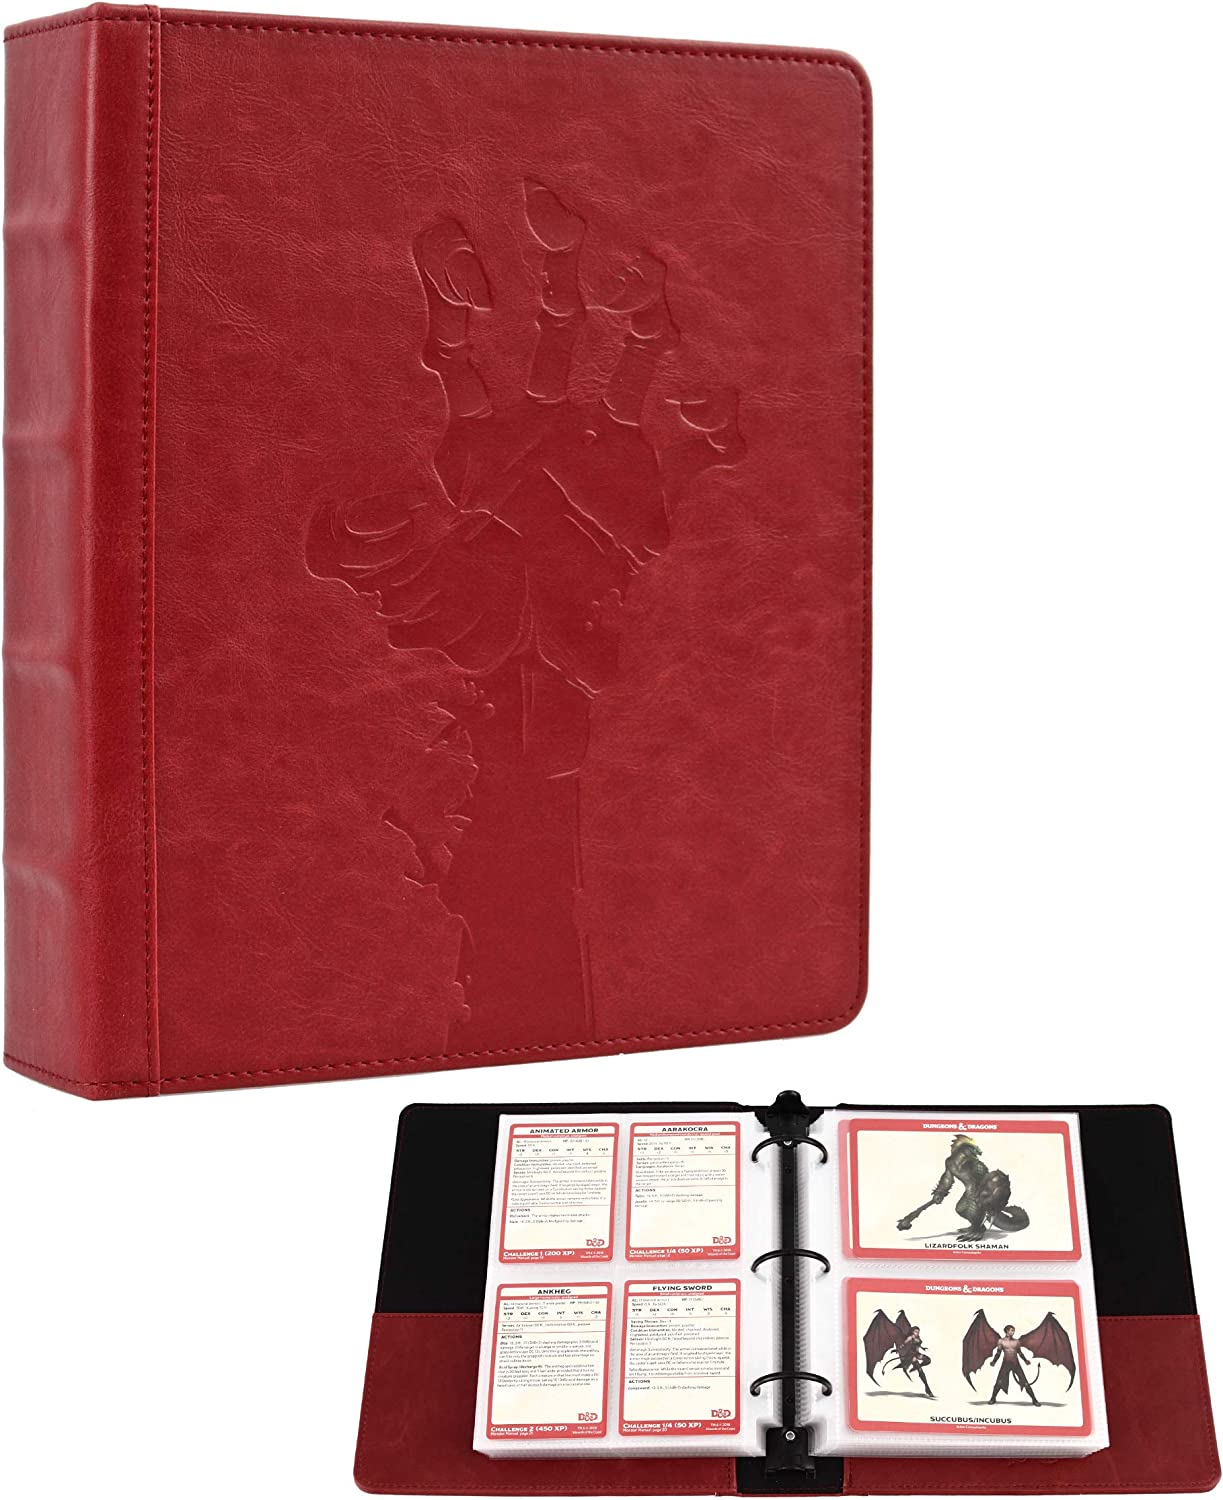 Forged Dice Co Curiosities Cache Monster Card & Spellcard Organizer Binder with Pages (Rise the Dead Edition) Spellbook Cards Holder for Spell & Monster Cards - Fits D&D MTG Magic Pokemon Yugioh Cards